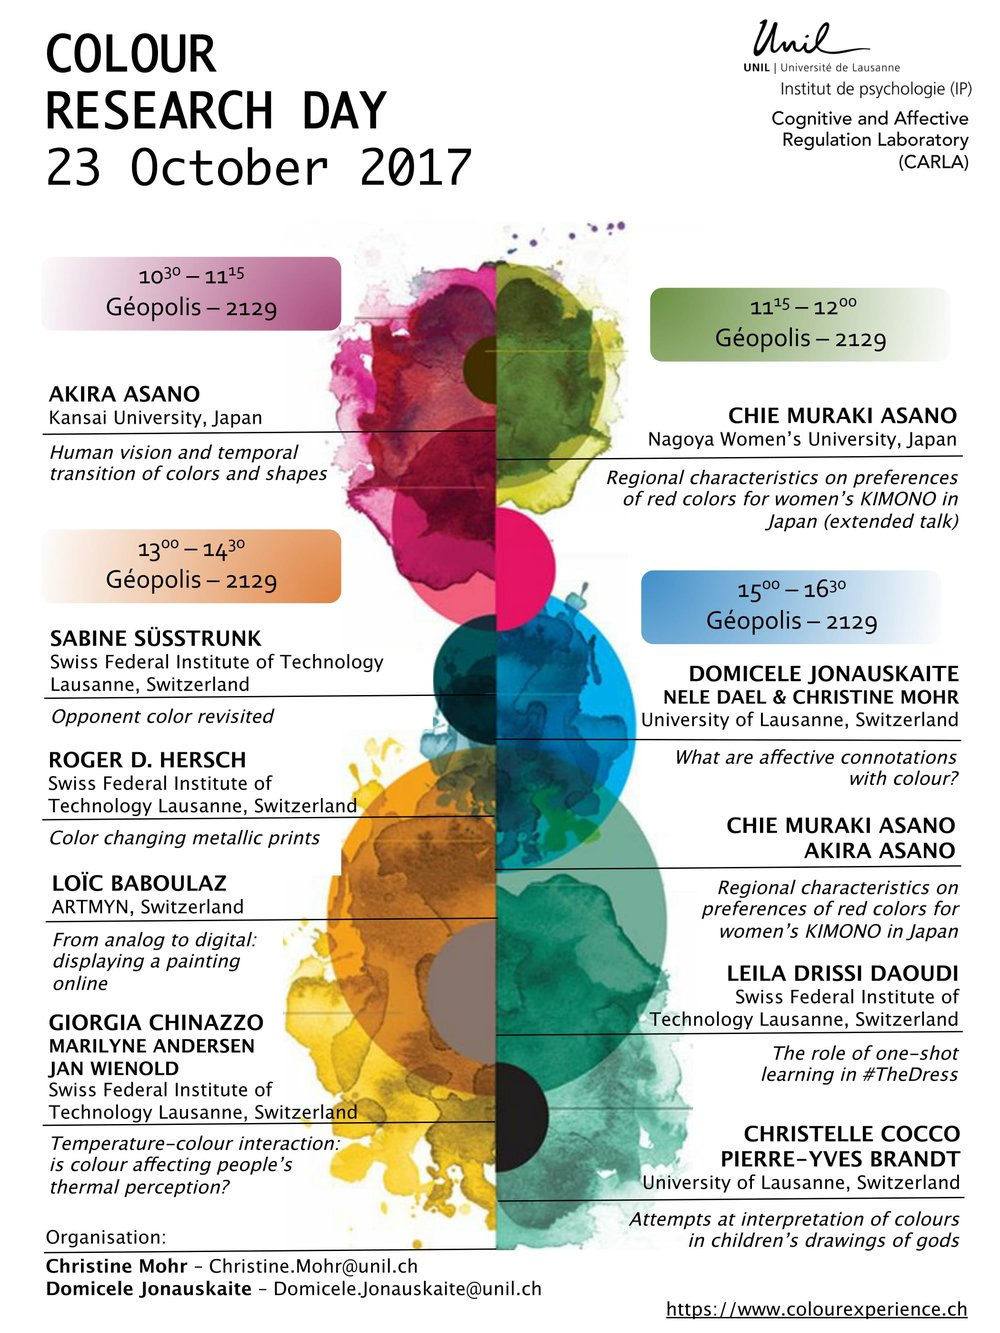 Colour Research Day 2017 program